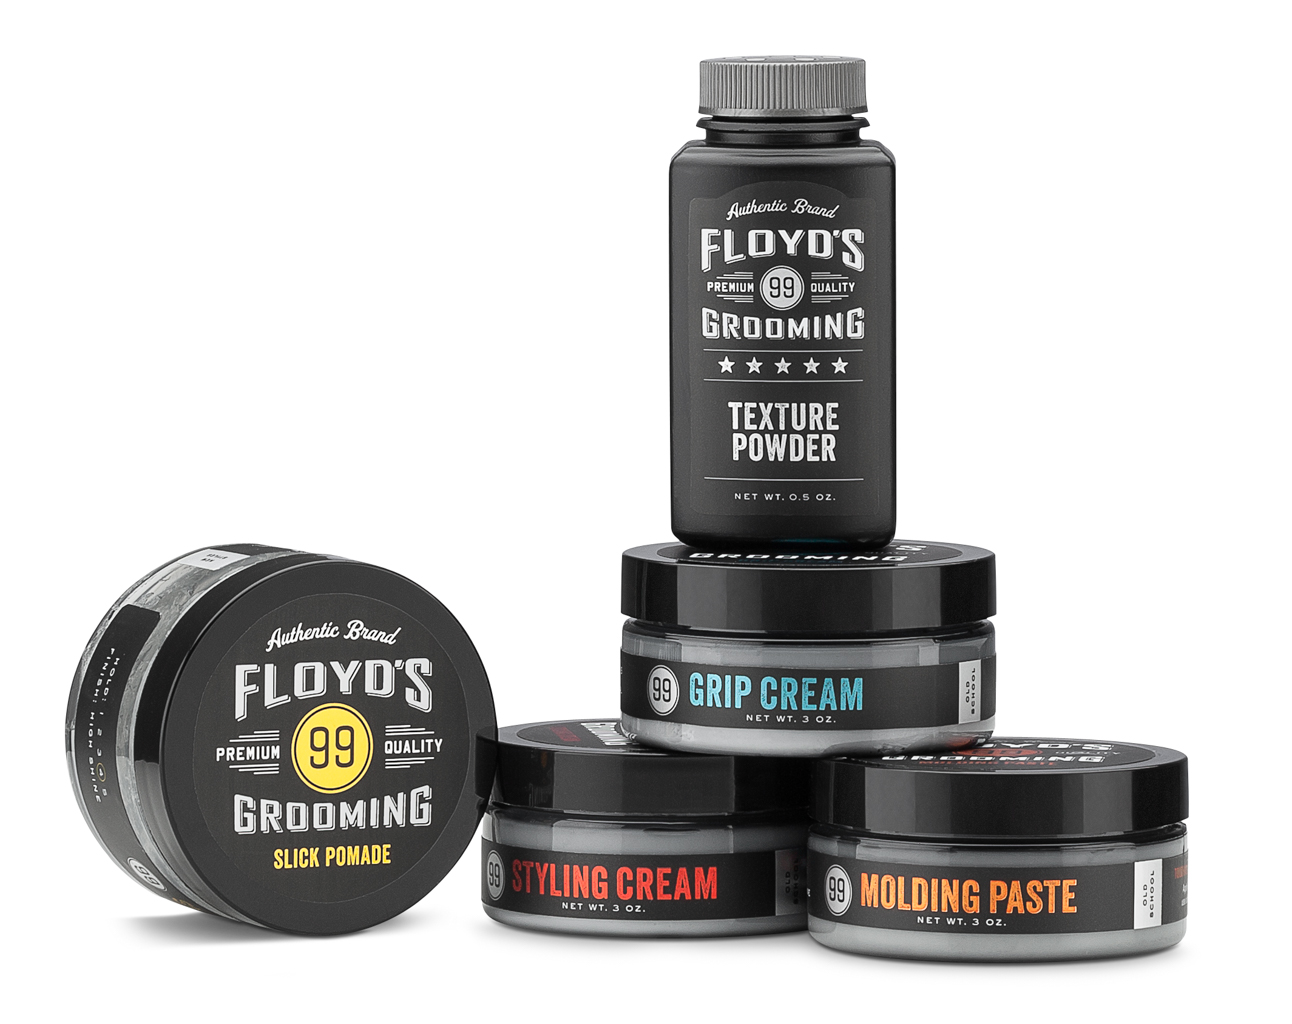 Floyds barber shop grooming products styled on a white background